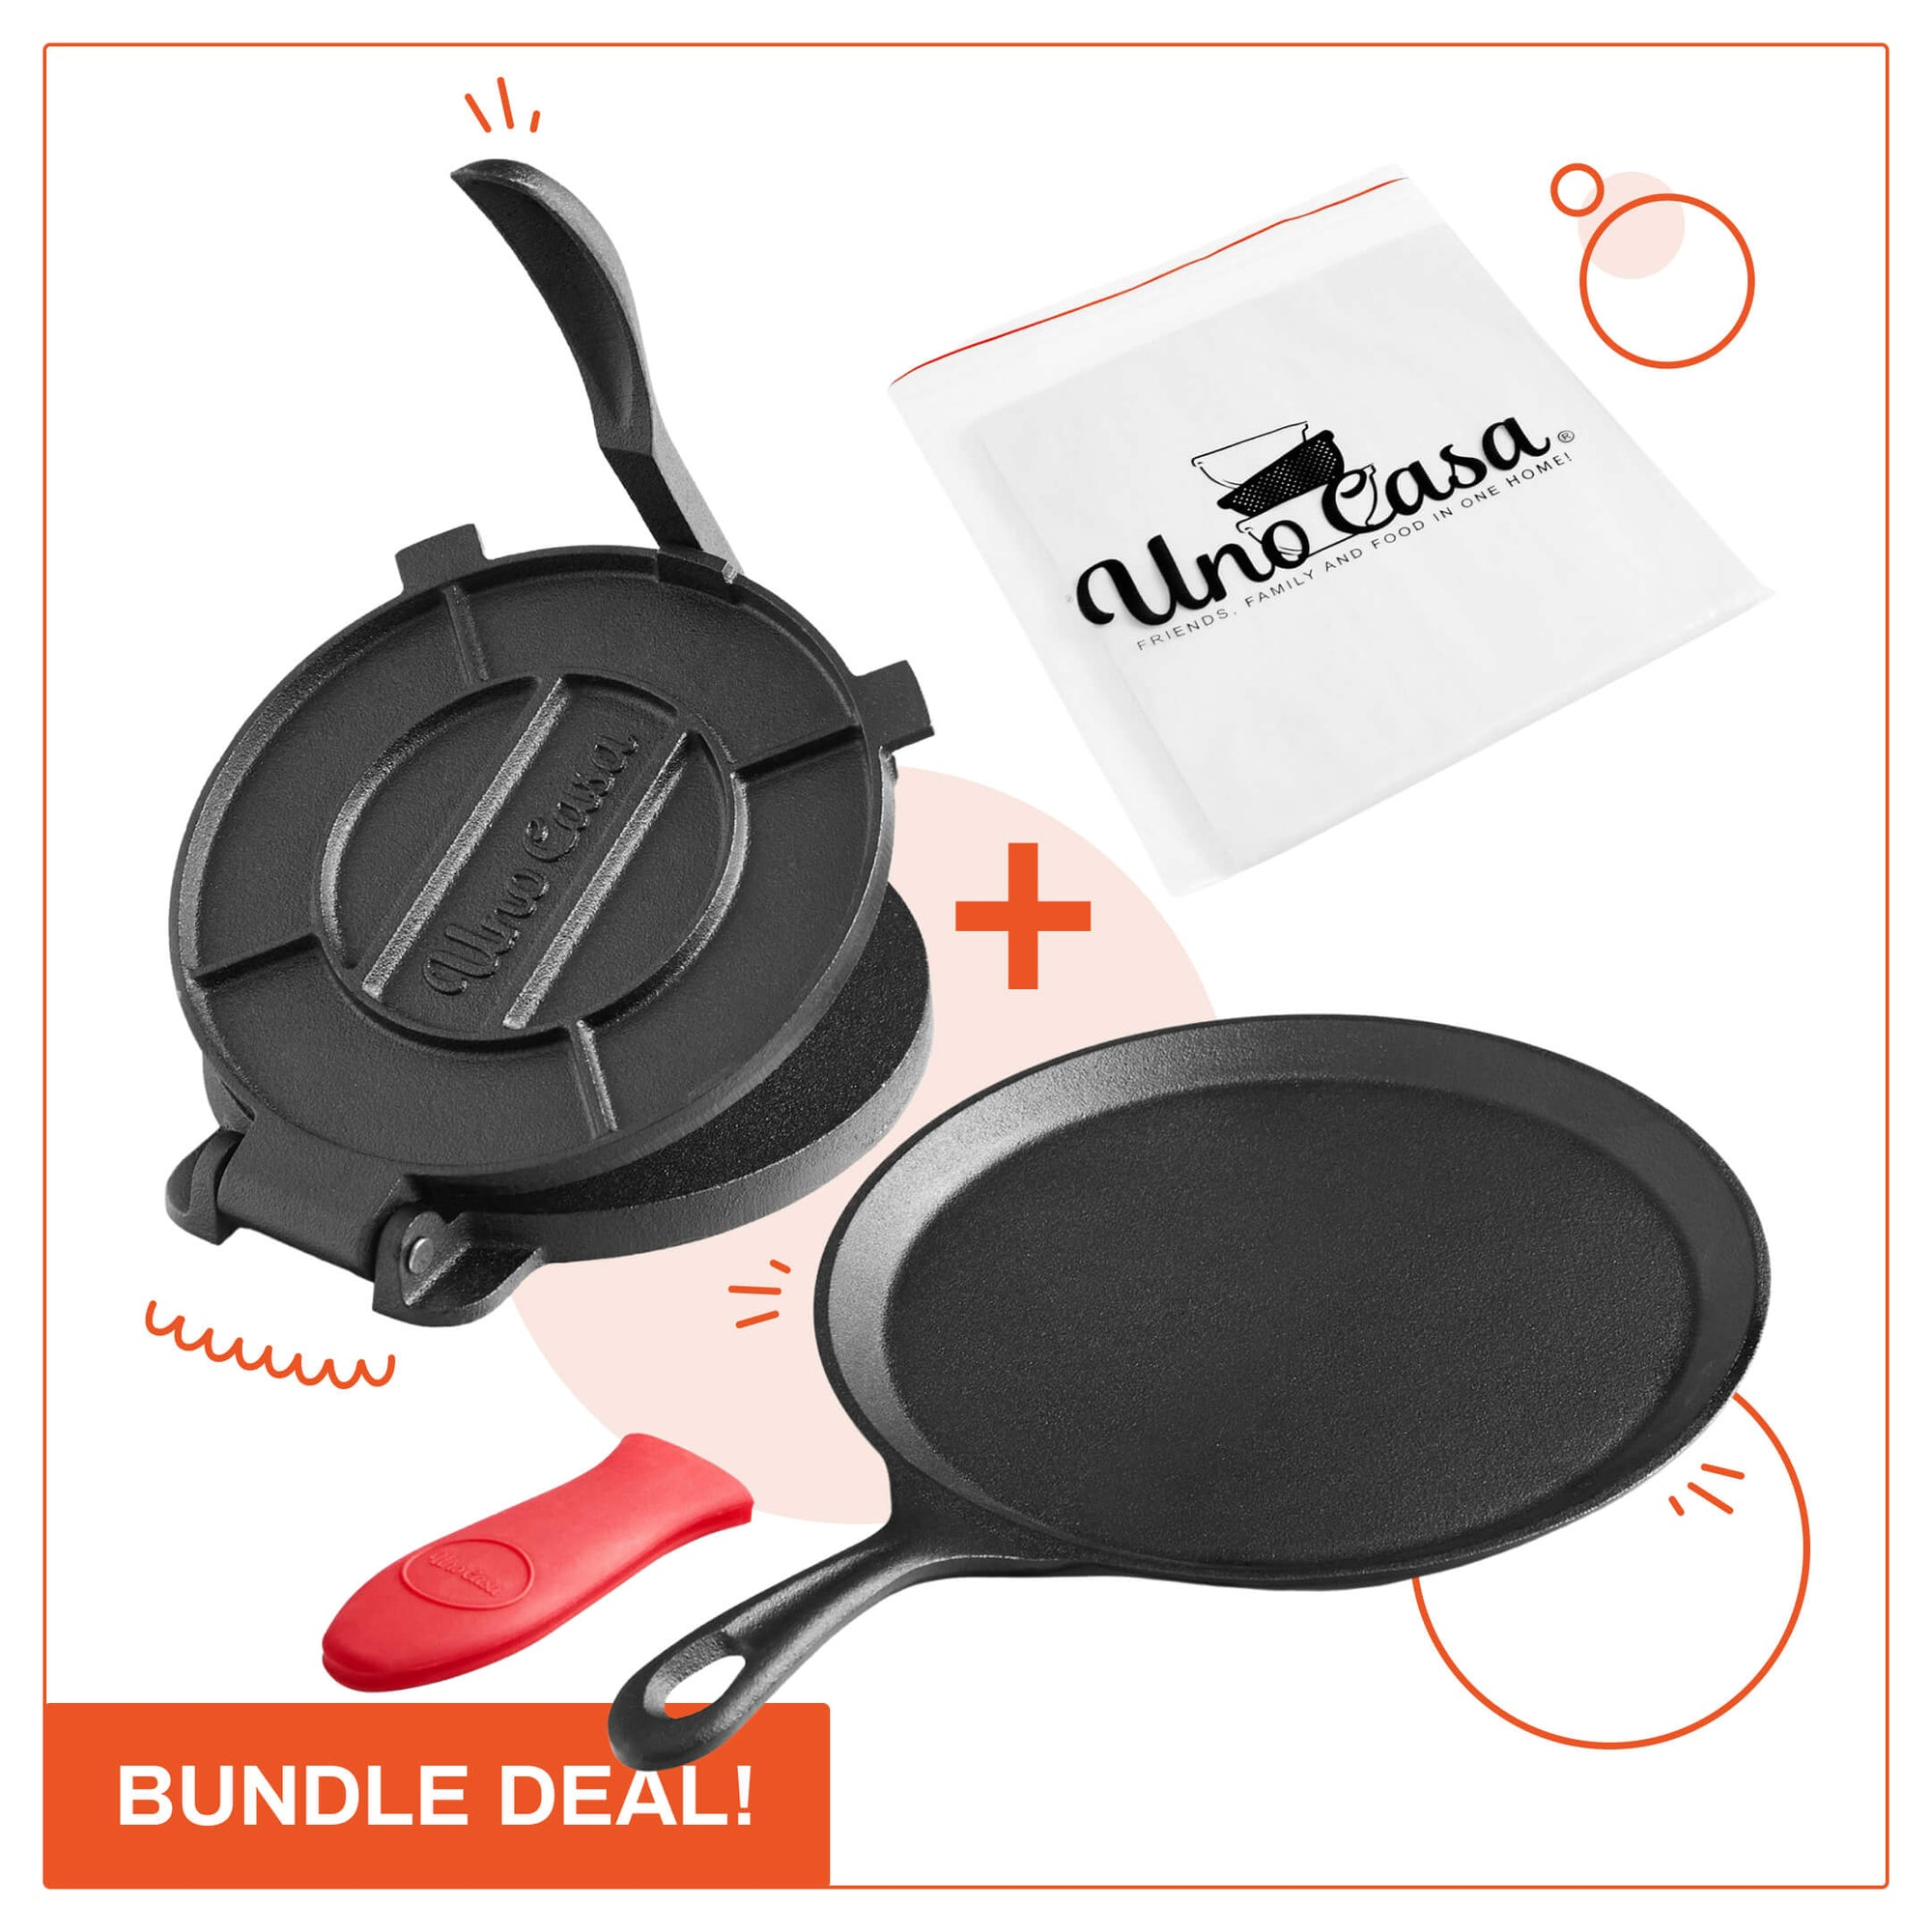 COMAL PAN AND TORTILLA PRESS (8IN) BUNDLE